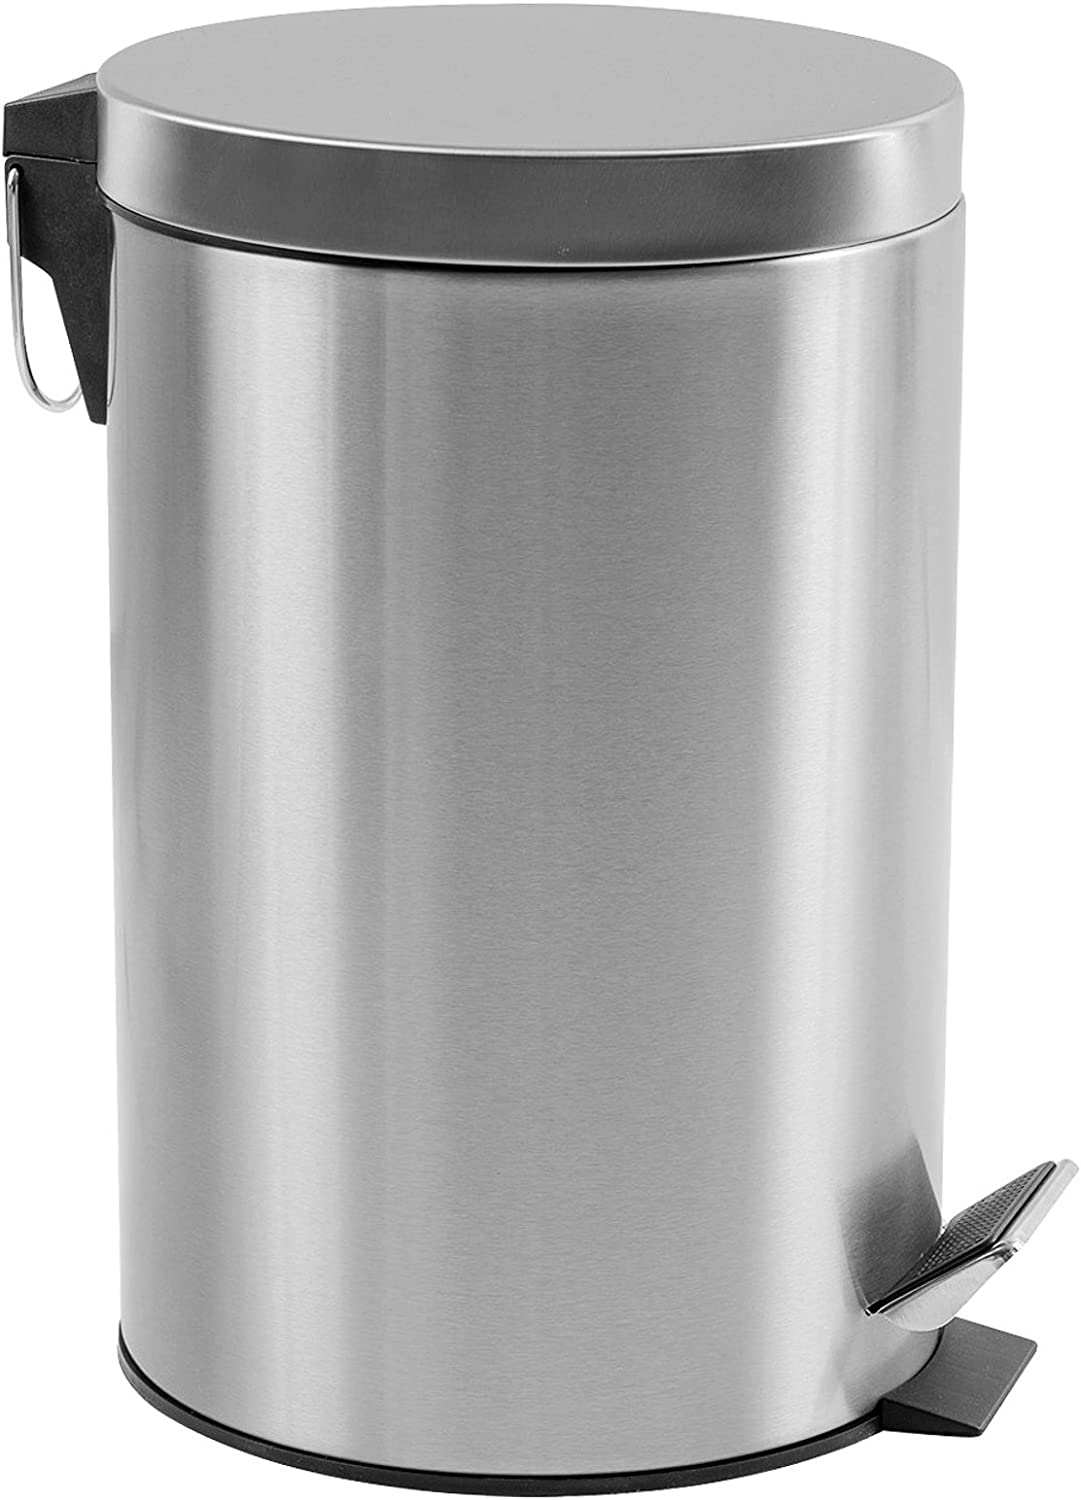 Estilo Round Brushed Stainless Steel Step Trash Can 5L - Fingerprint Resistant